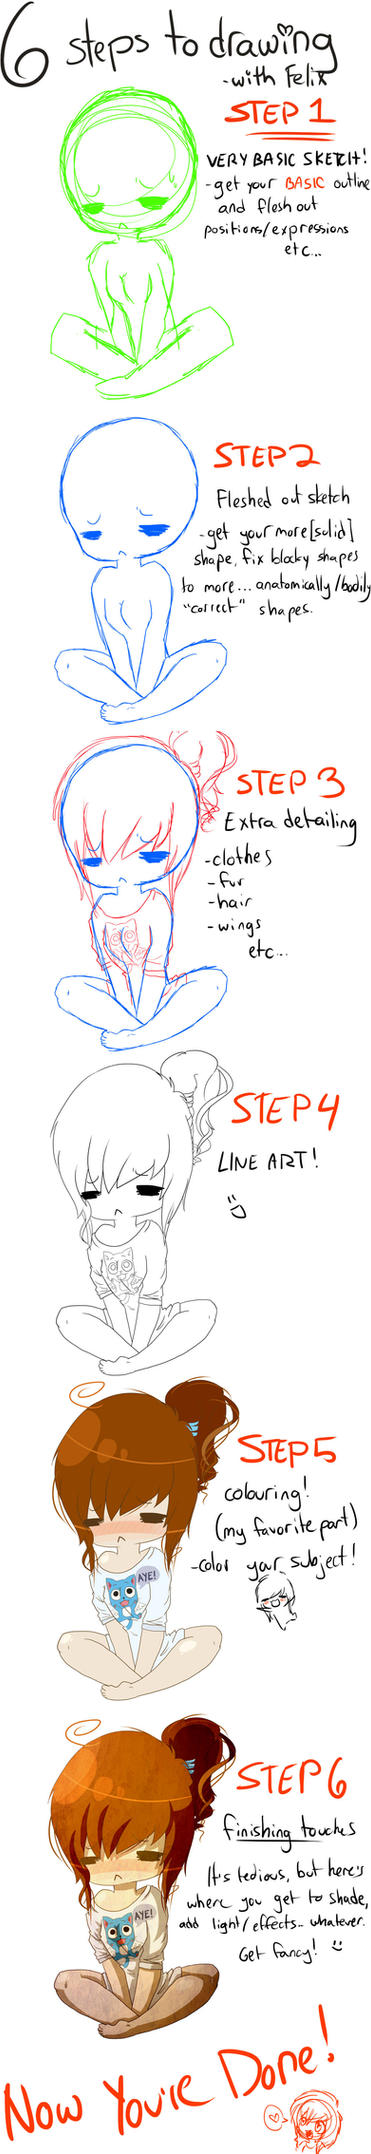 Steps in drawing tutorial by coffaefox